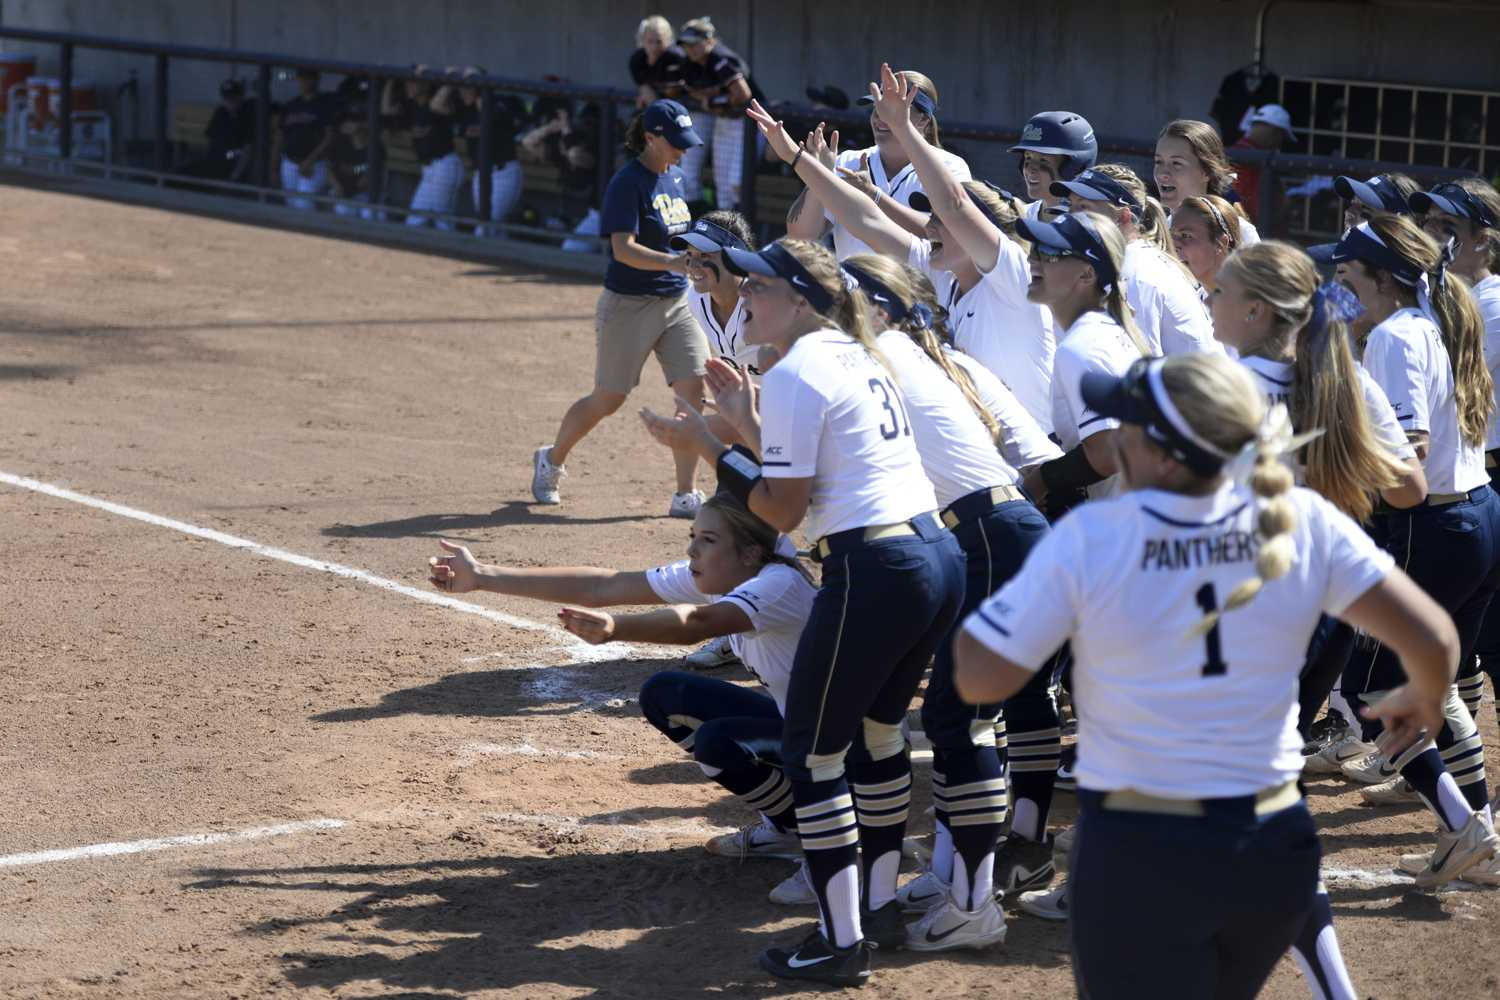 Softball players cheer on their teammate at a Sept. 23 game against Saint Francis University. (Photo by Issi Glatts / Staff Photographer)